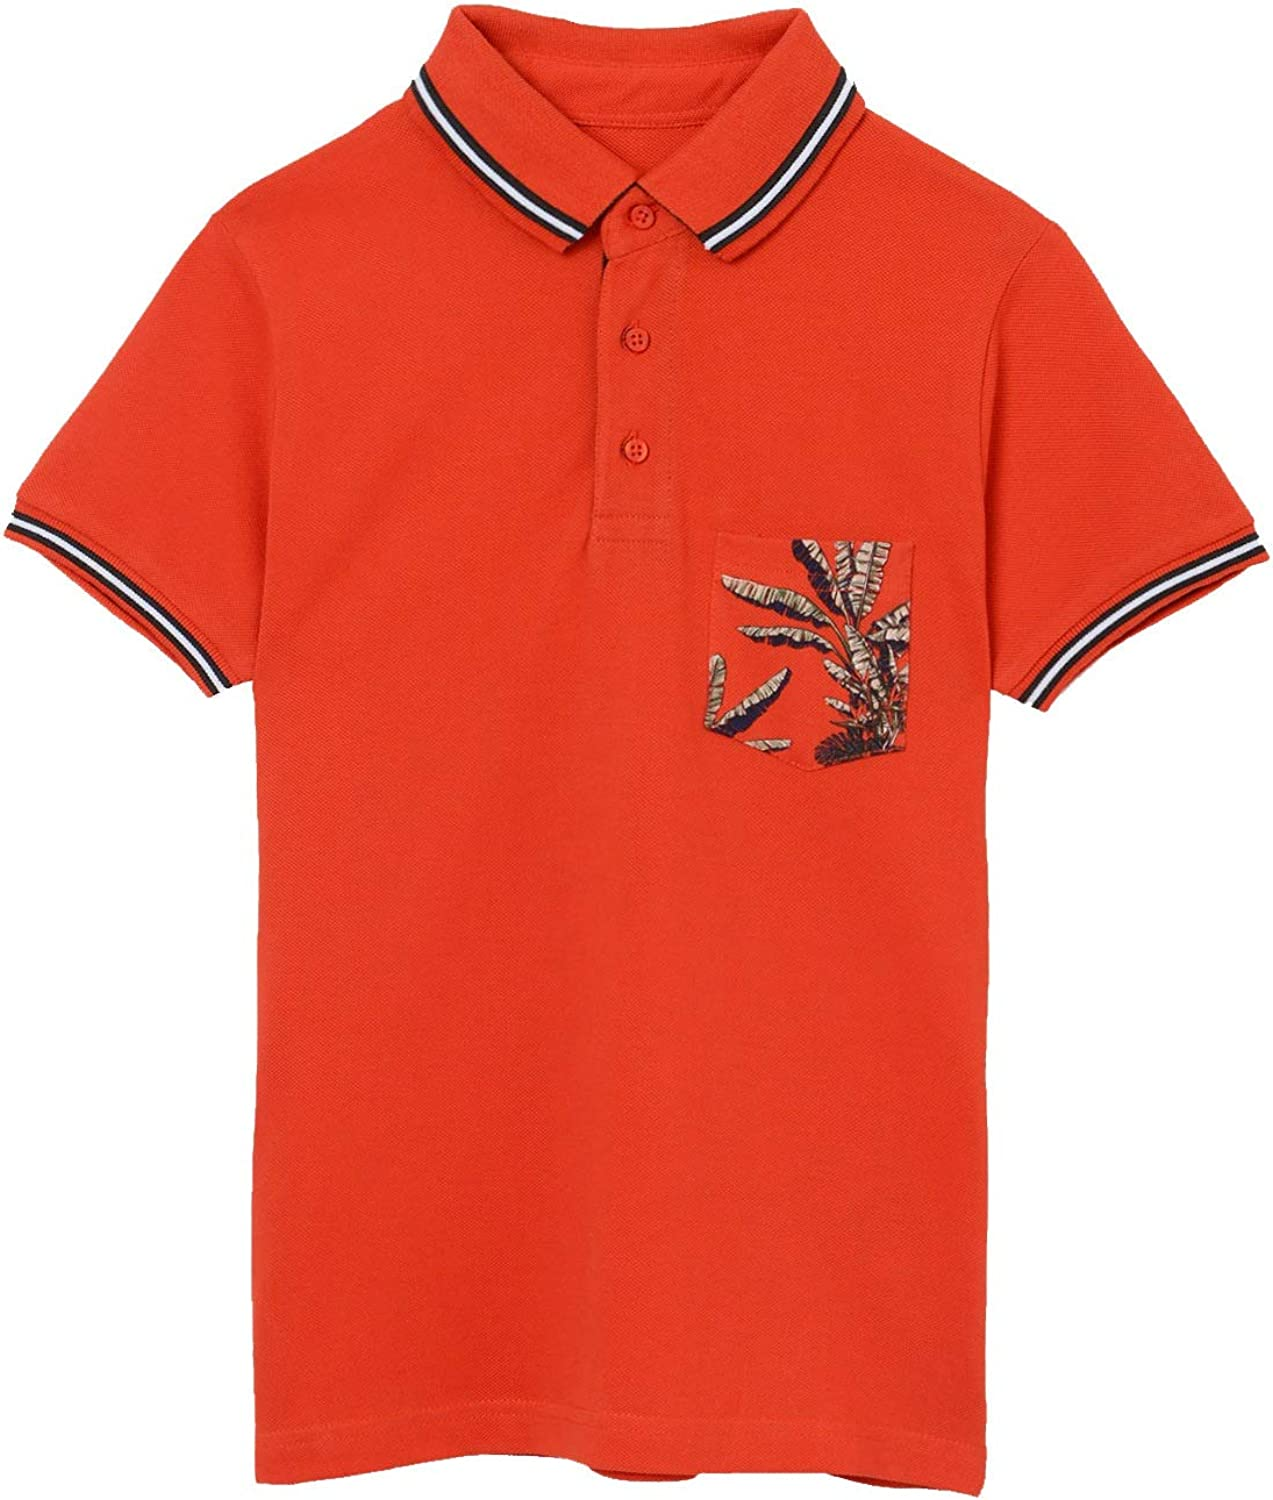 Mayoral - Short Sleeve Patterned Polo for Boys - 6108, Hibiscus